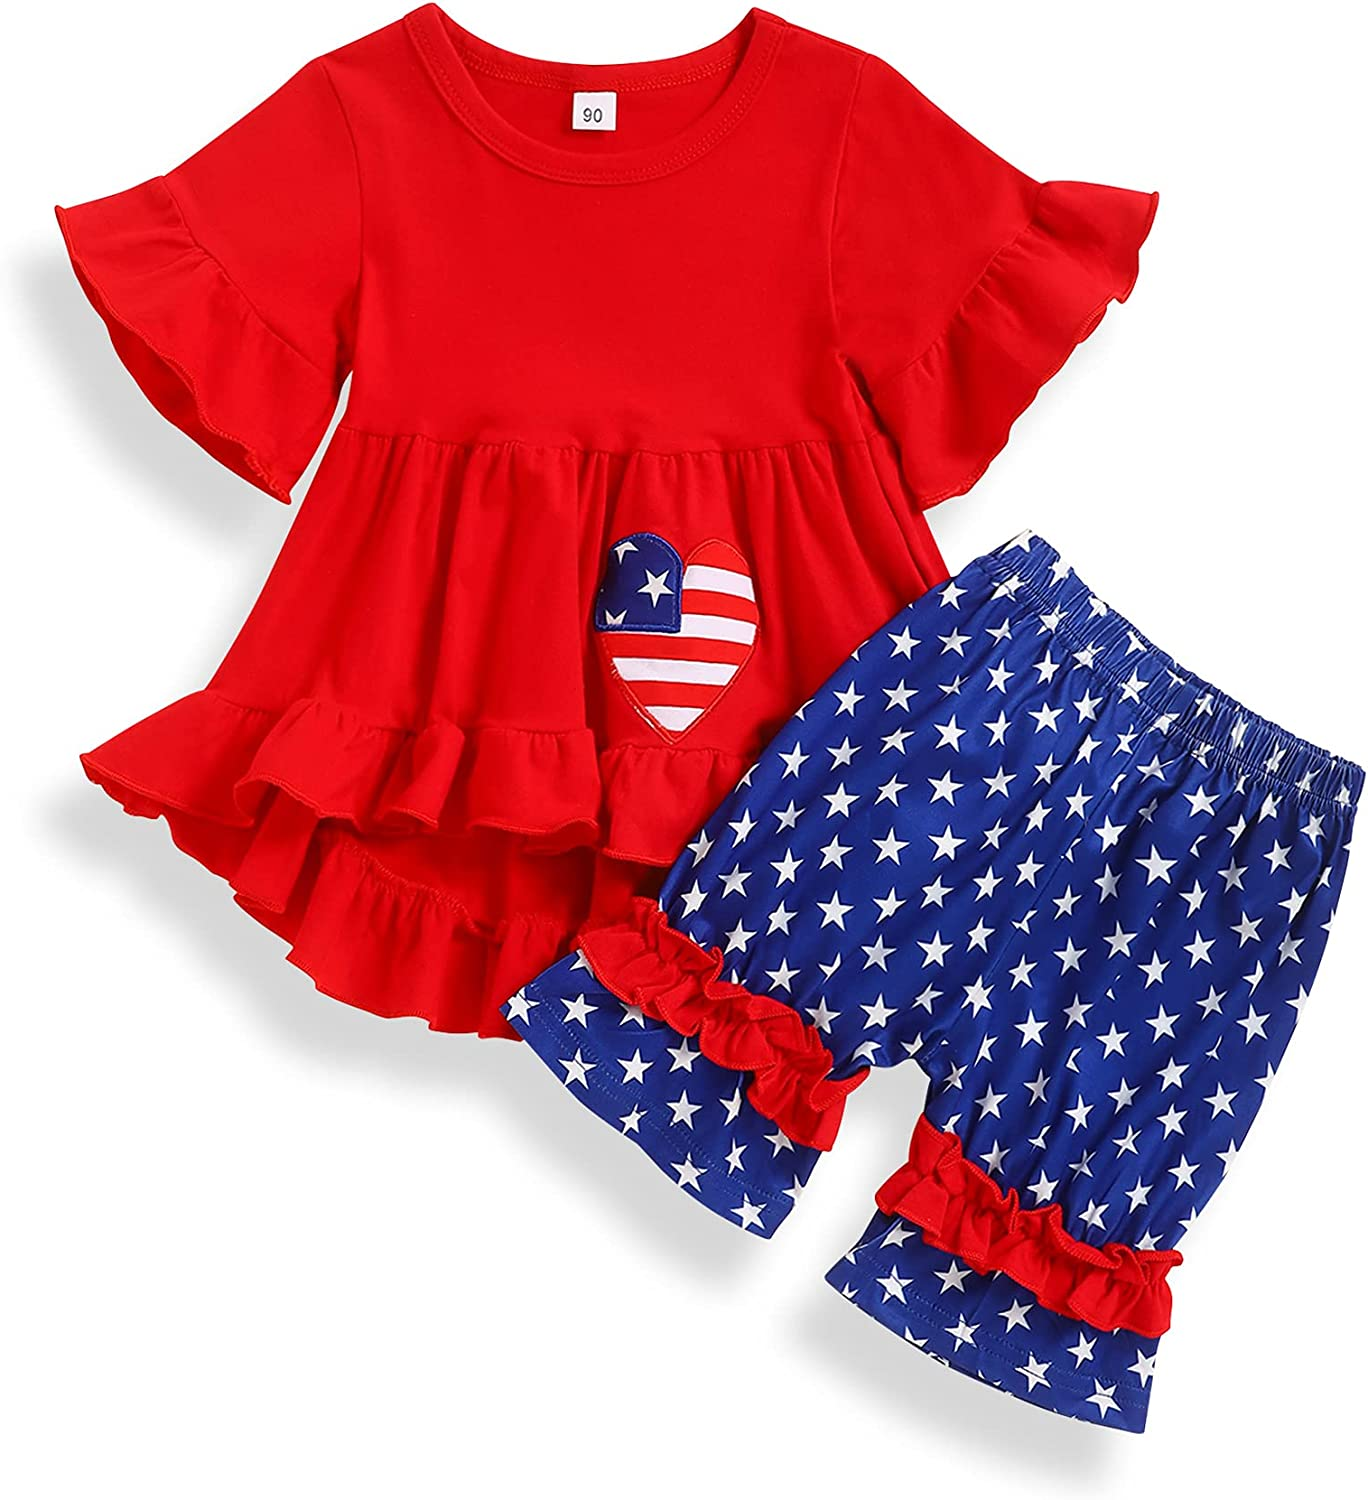 Xinlykid 4th of July Toddler Baby Girl Clothes Independence Day Ruffle Top + American Flag Star Pants Outfits Set